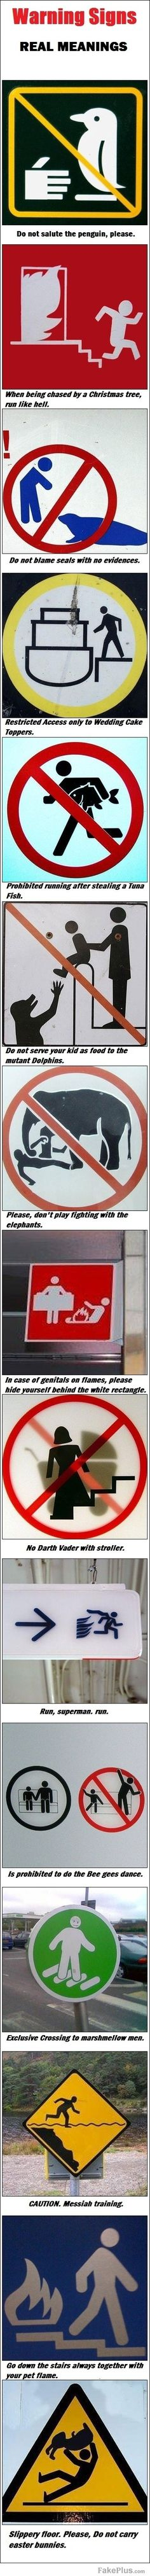 THIS IS HILARIOUS!  i will never look at signs the same way, again